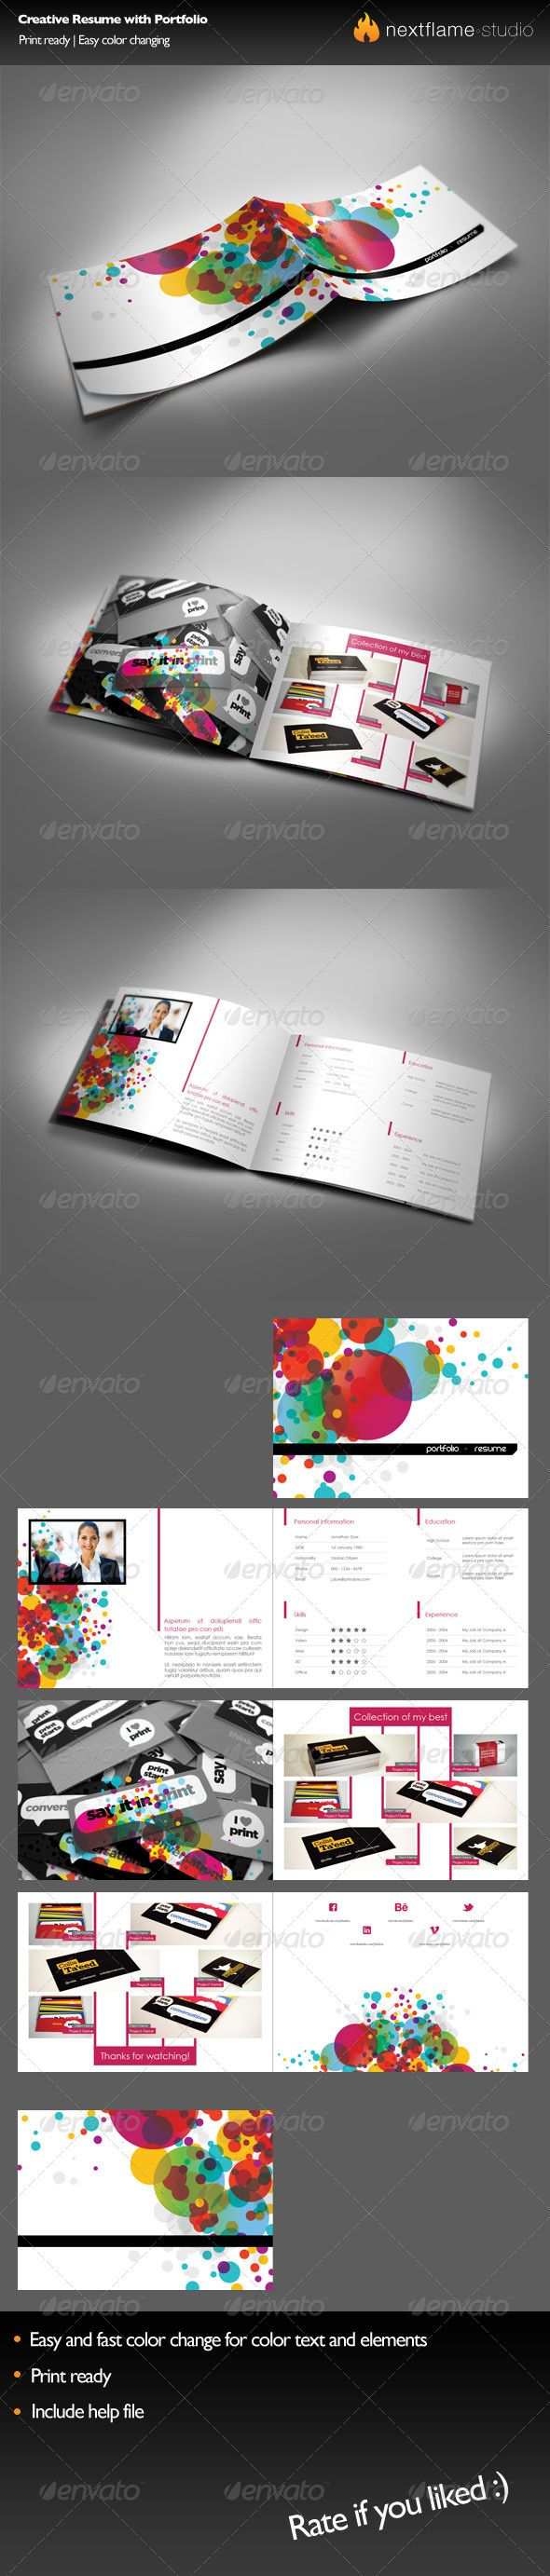 17 best images about portfolio ideas infographic 17 best images about portfolio ideas infographic resume creative resume and desk calendars